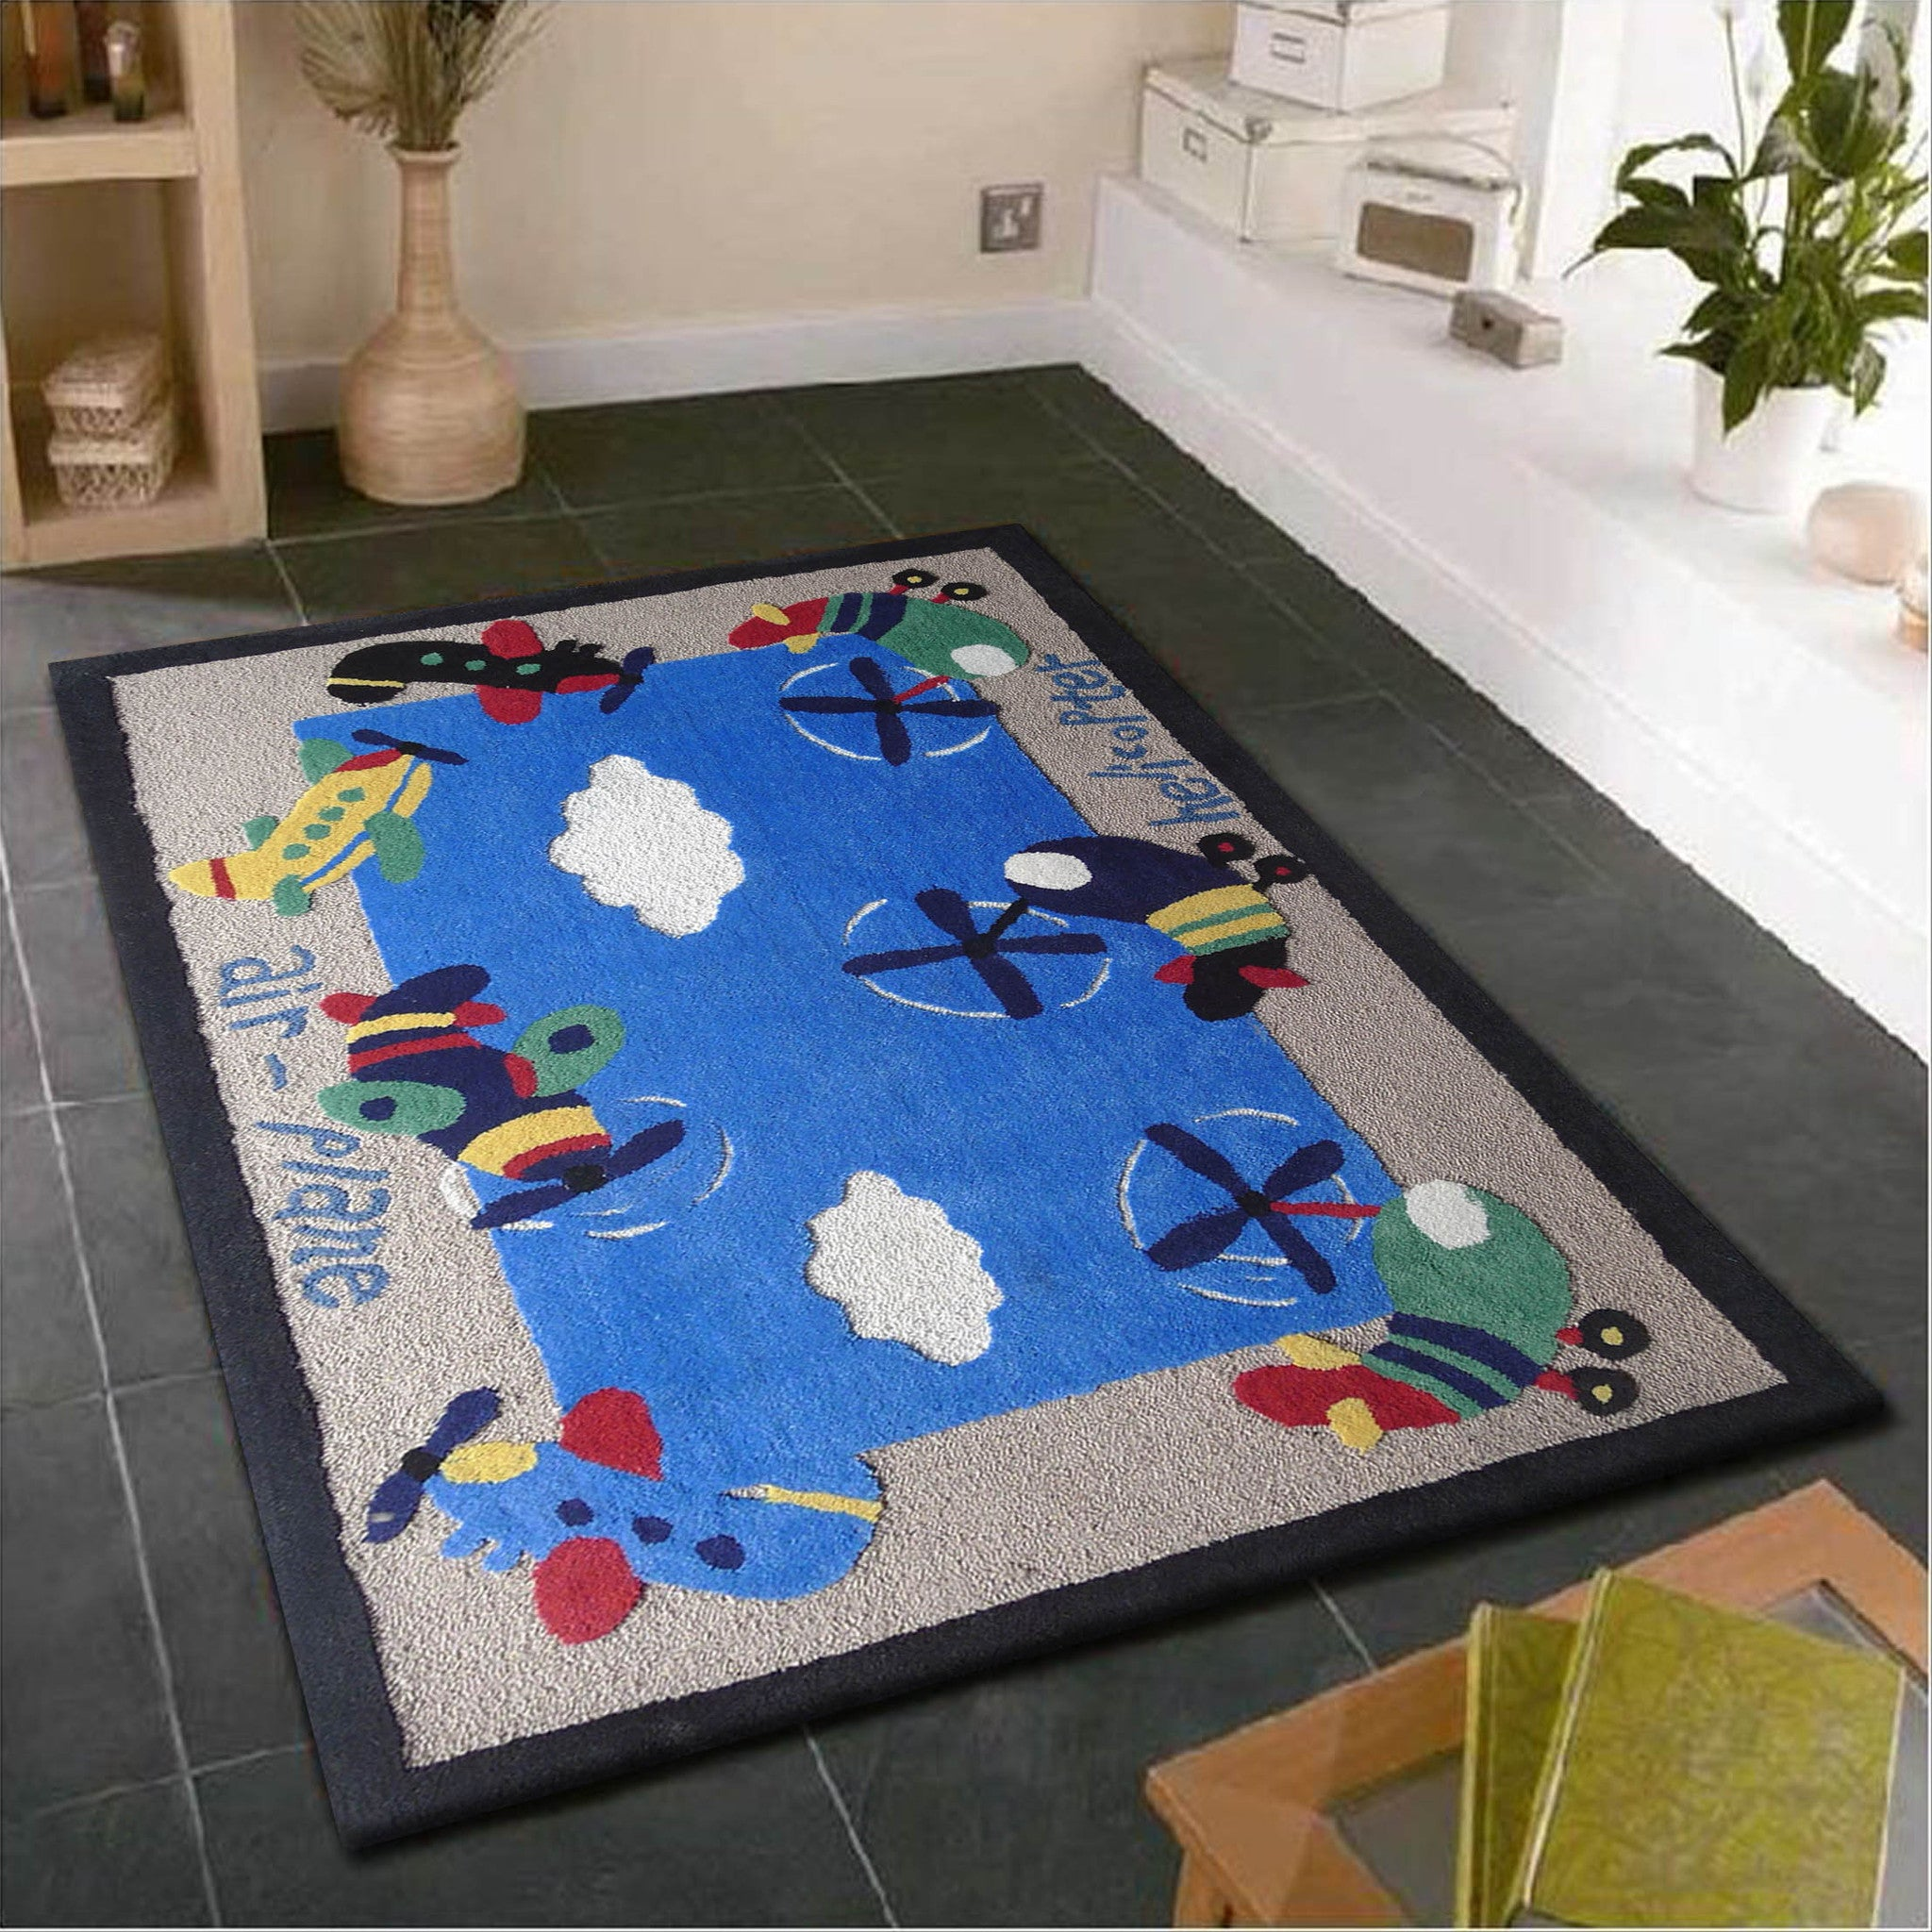 X Ft Kids Bedroom Area Rug With Air Plane Designs Rug